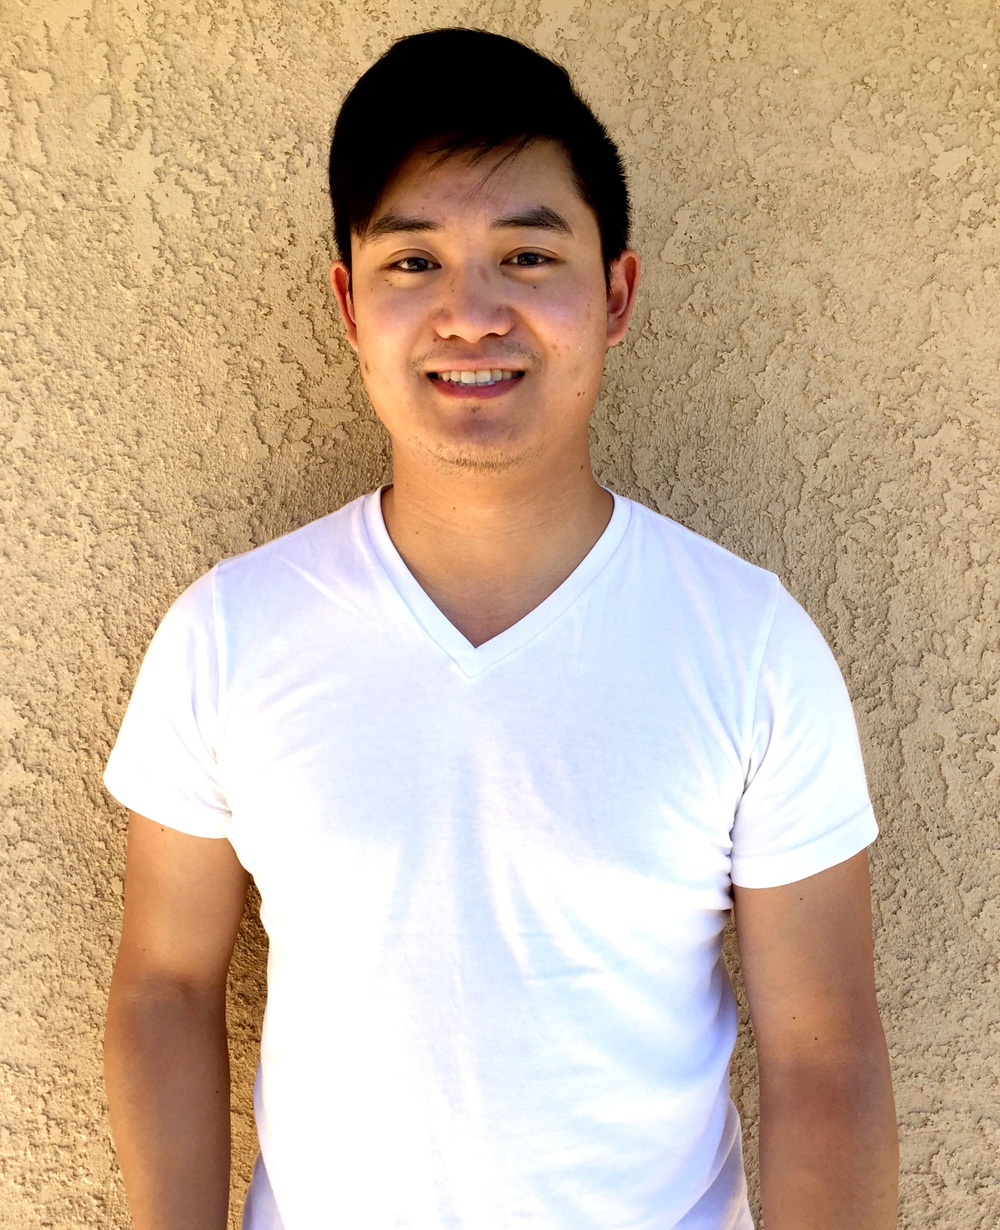 MARCUS YAU, HOUSE PASTOR. MARCUS Is a leader and worshiper from Southern California. After graduating in 2011, he desperately desired a closer relationship with the Father and quickly found himself serving in ministry and loving on brothers and sisters. Currently, Marcus is a 2nd year student at BSSM. He has a great passion for seeing genuine community raised up and for the lost to be known.